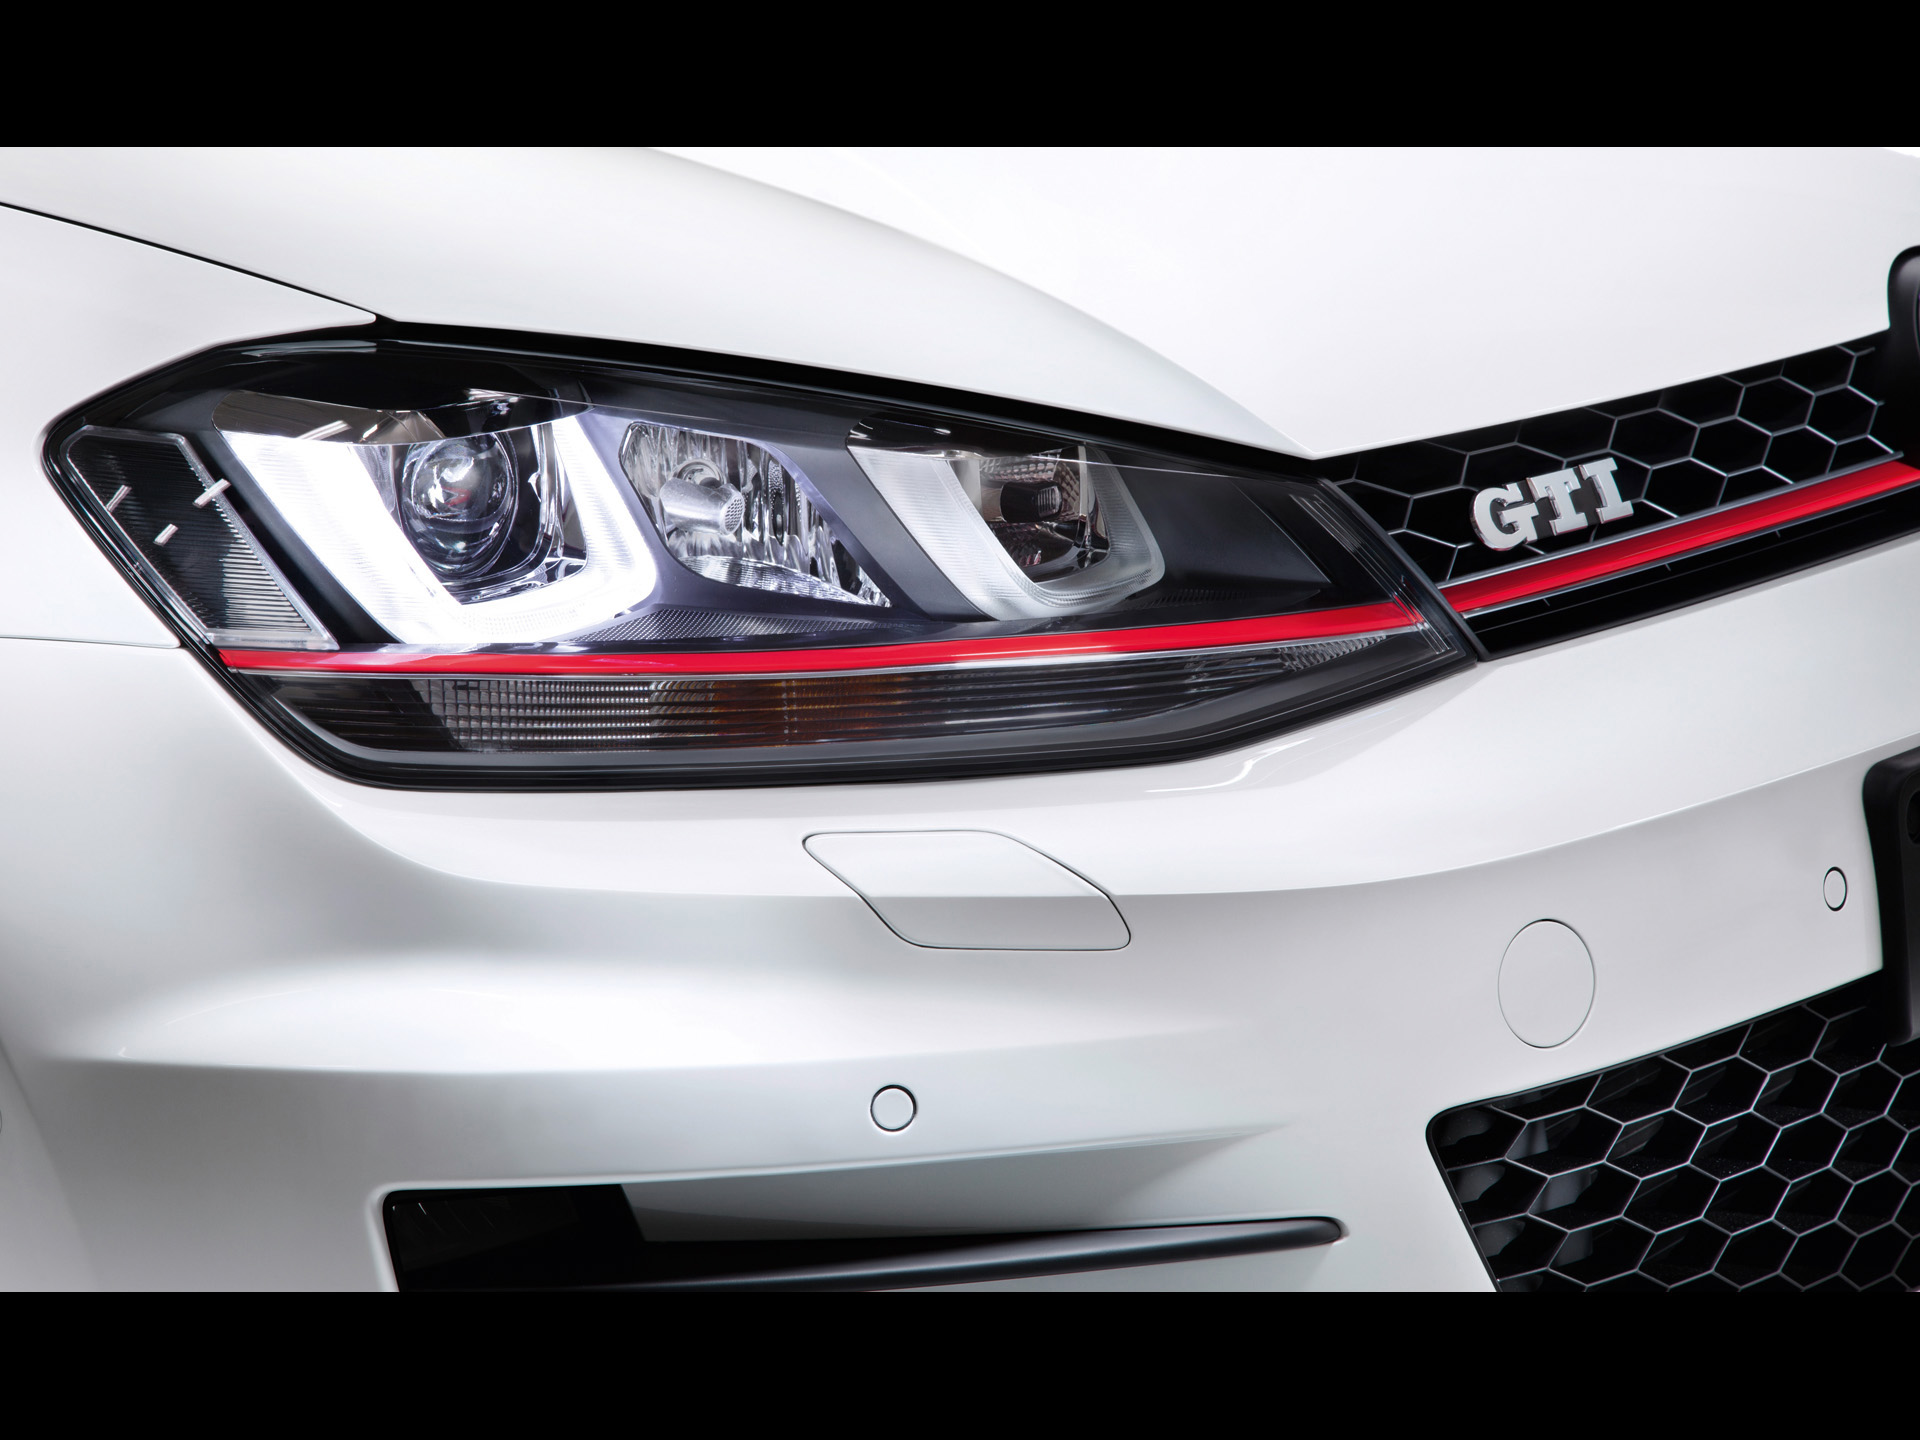 click to free download the wallpaper--Top Car Posts of Golf 7 GTI, Its Sharp and Impressive Headlights Shown 1920X1440 free wallpaper download